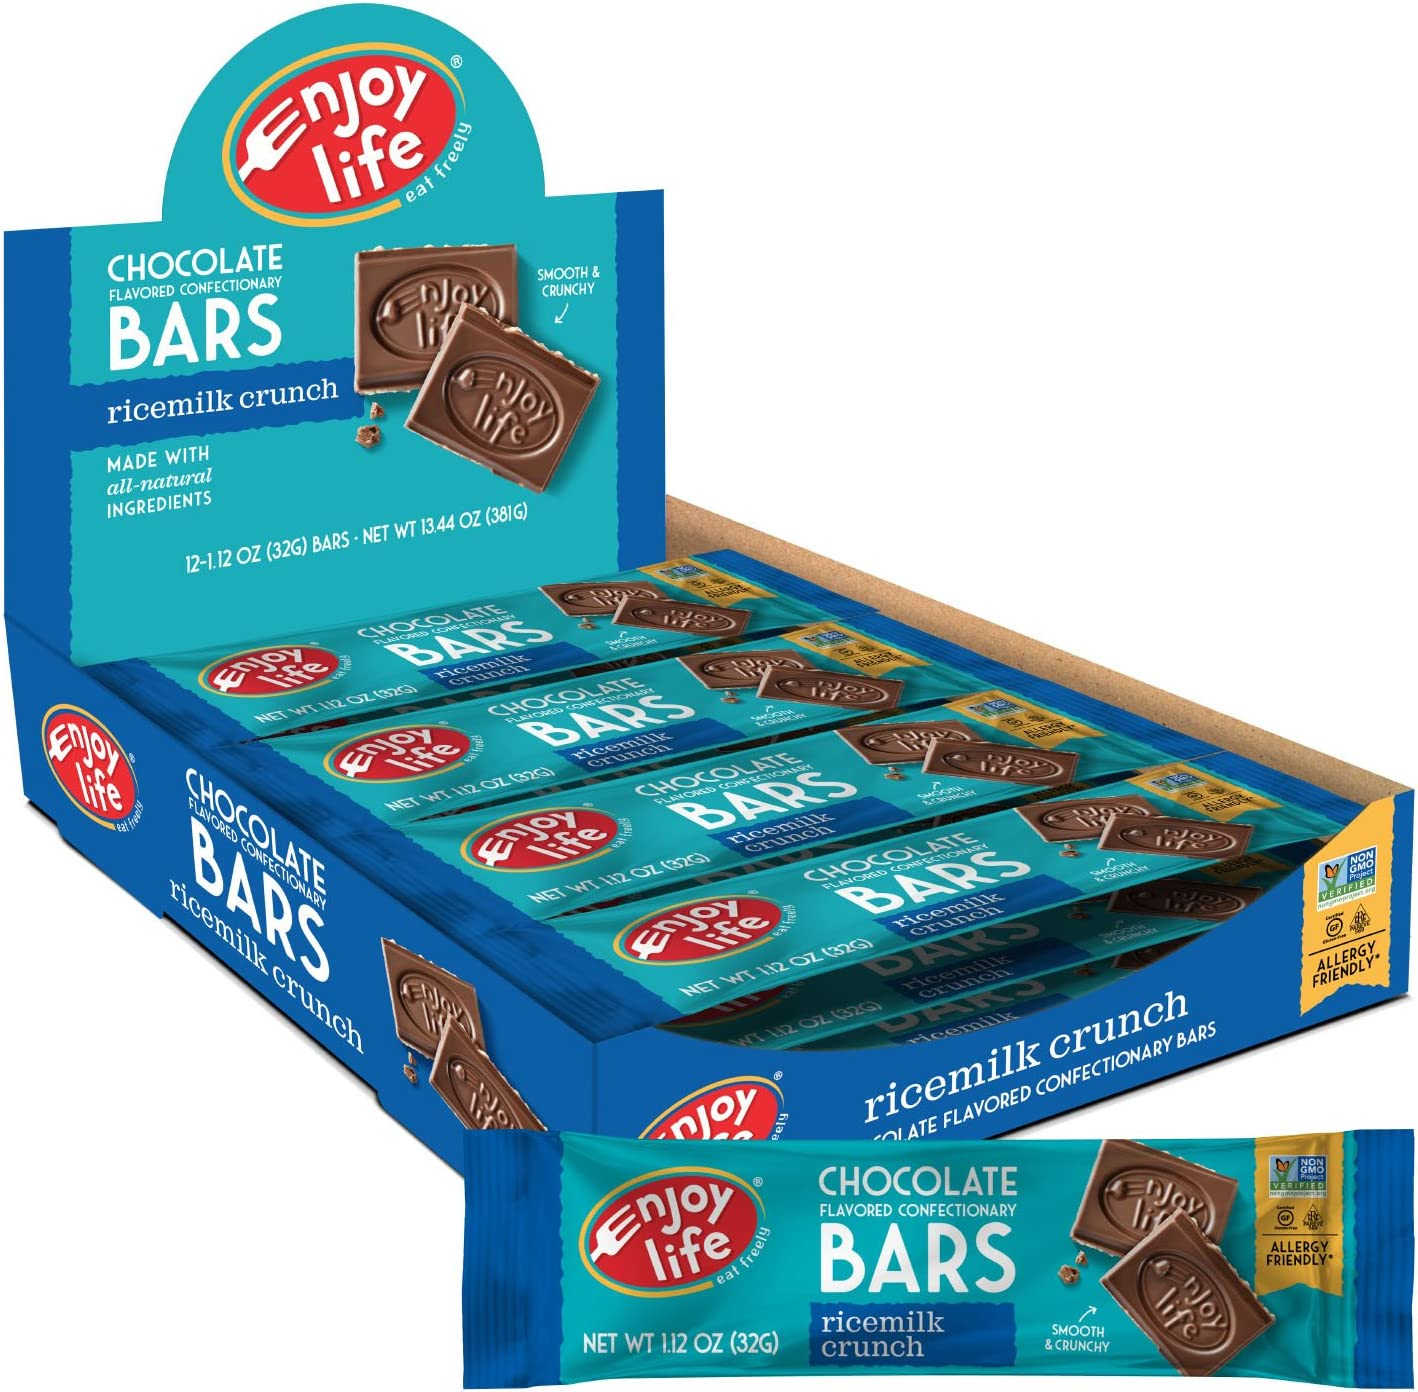 Enjoy Life Dairy Free Chocolate Bars, Soy Free, Nut Free, Gluten Free, Non GMO, Ricemilk Crunch, 2 Boxes of 12 Bars (24 Total Bars)